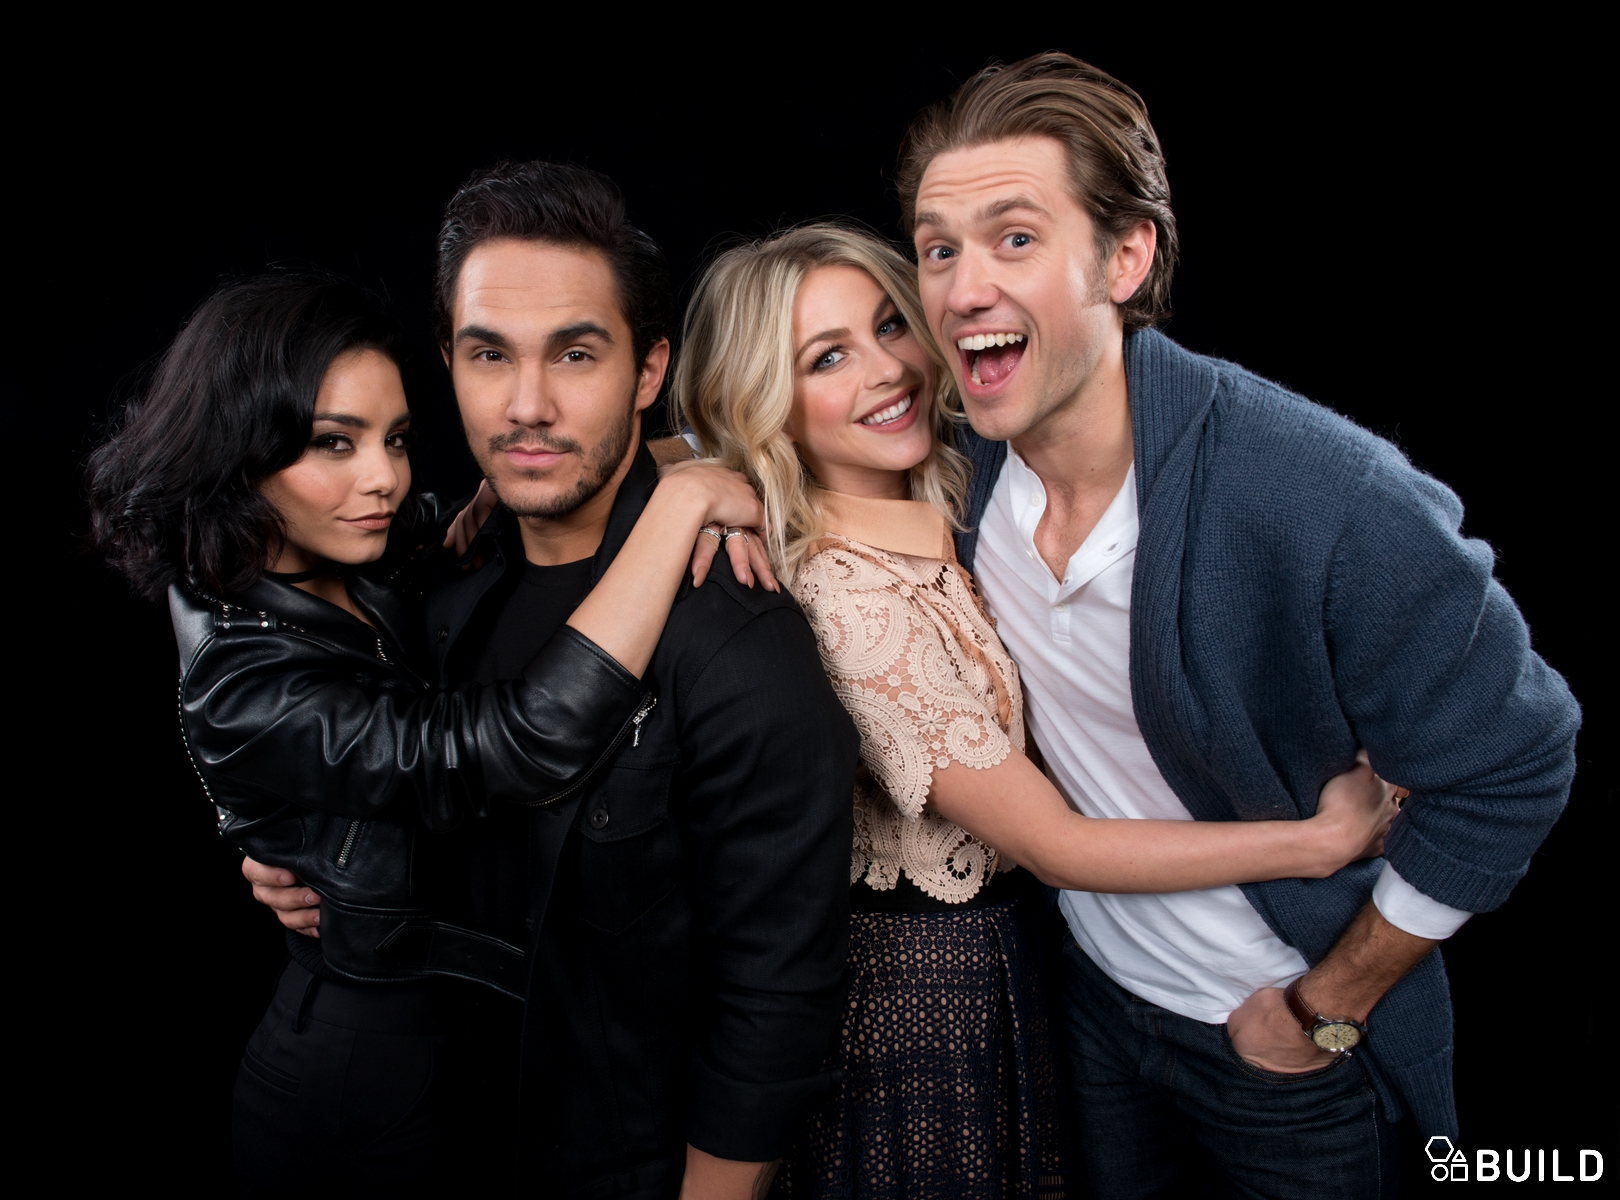 Julianne Hough, Vanessa Hudgens, Aaron Tveit and Carlos PenaVega visit AOL Hq for Build on January 18, 2016 in New York. Photos by Noam Galai